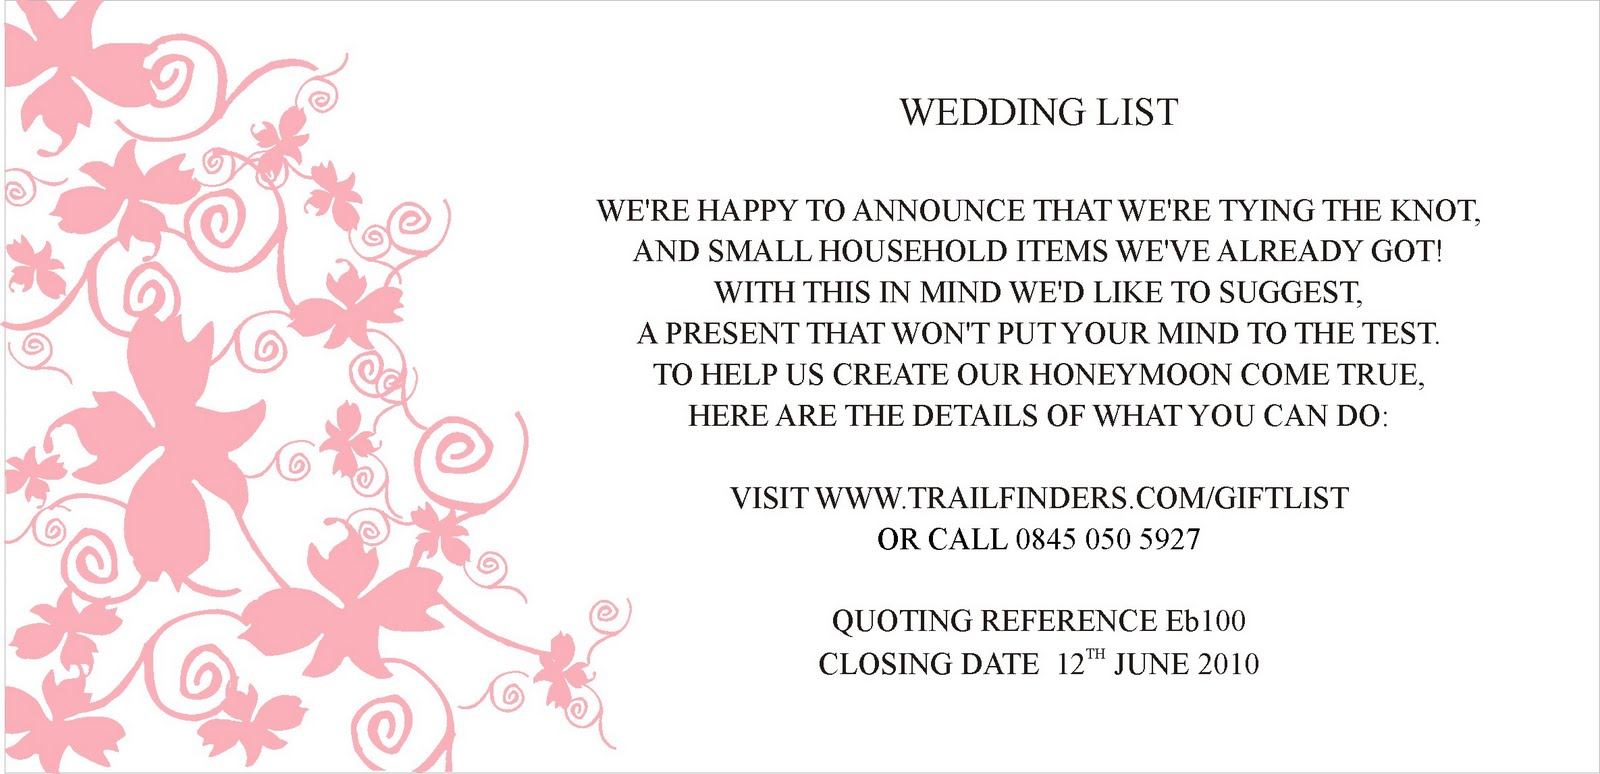 Wedding invitation gift list 28 images wedding invitation lovely wedding invitation gift list wedding invitation lovely gift list wording wedding wedding invitation filmwisefo